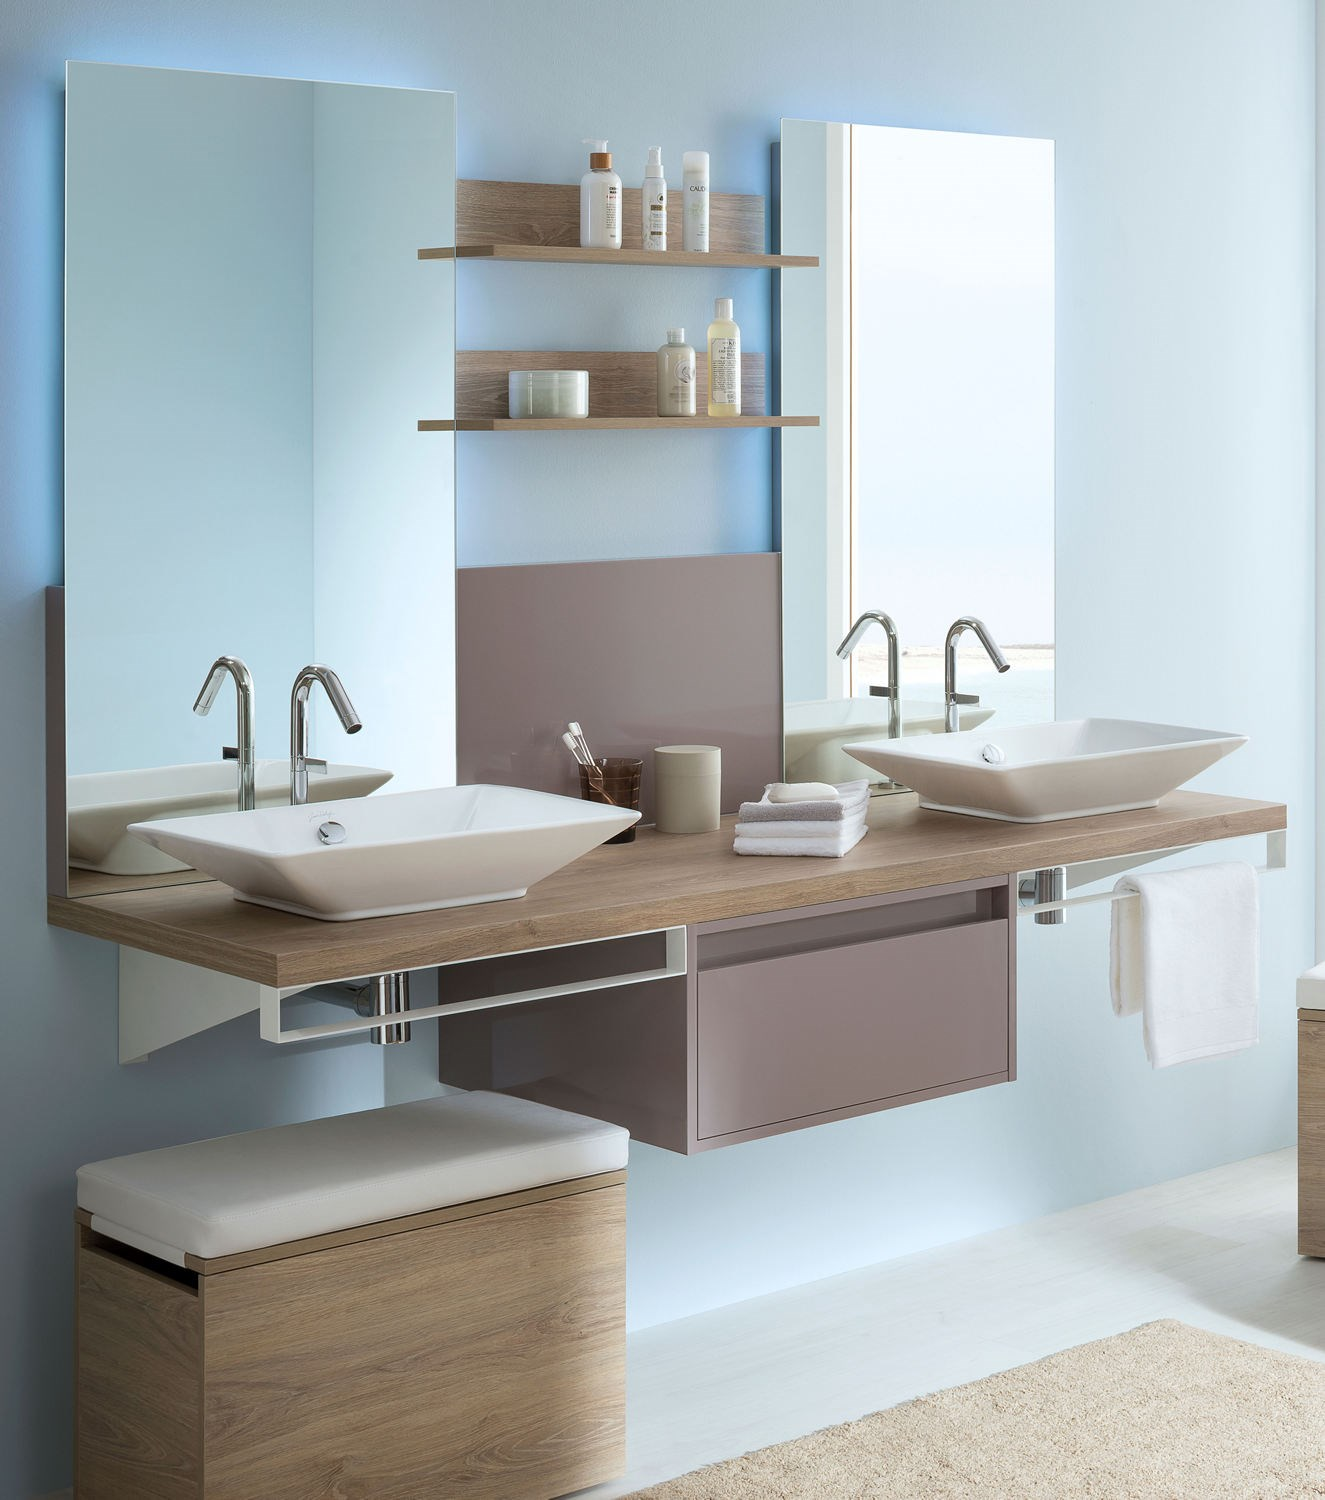 Ensemble meuble mix city sanijura for Meuble salle de bain porte